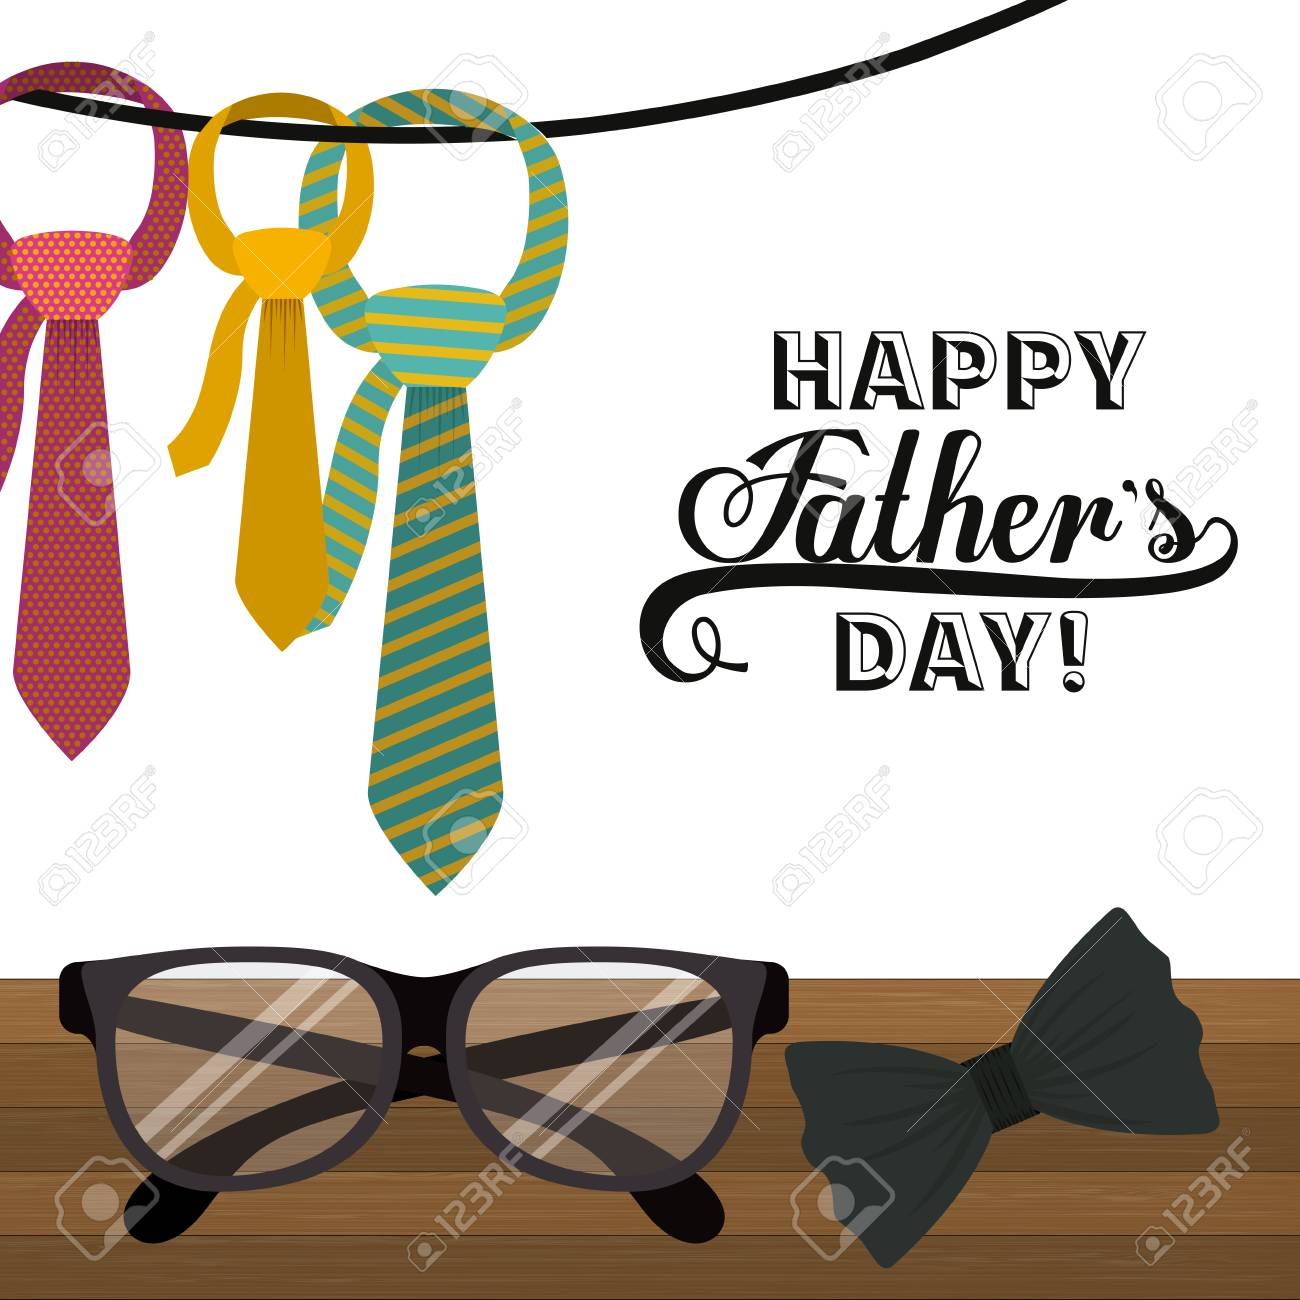 Fathers day design over white background, vector illustration - 39707589